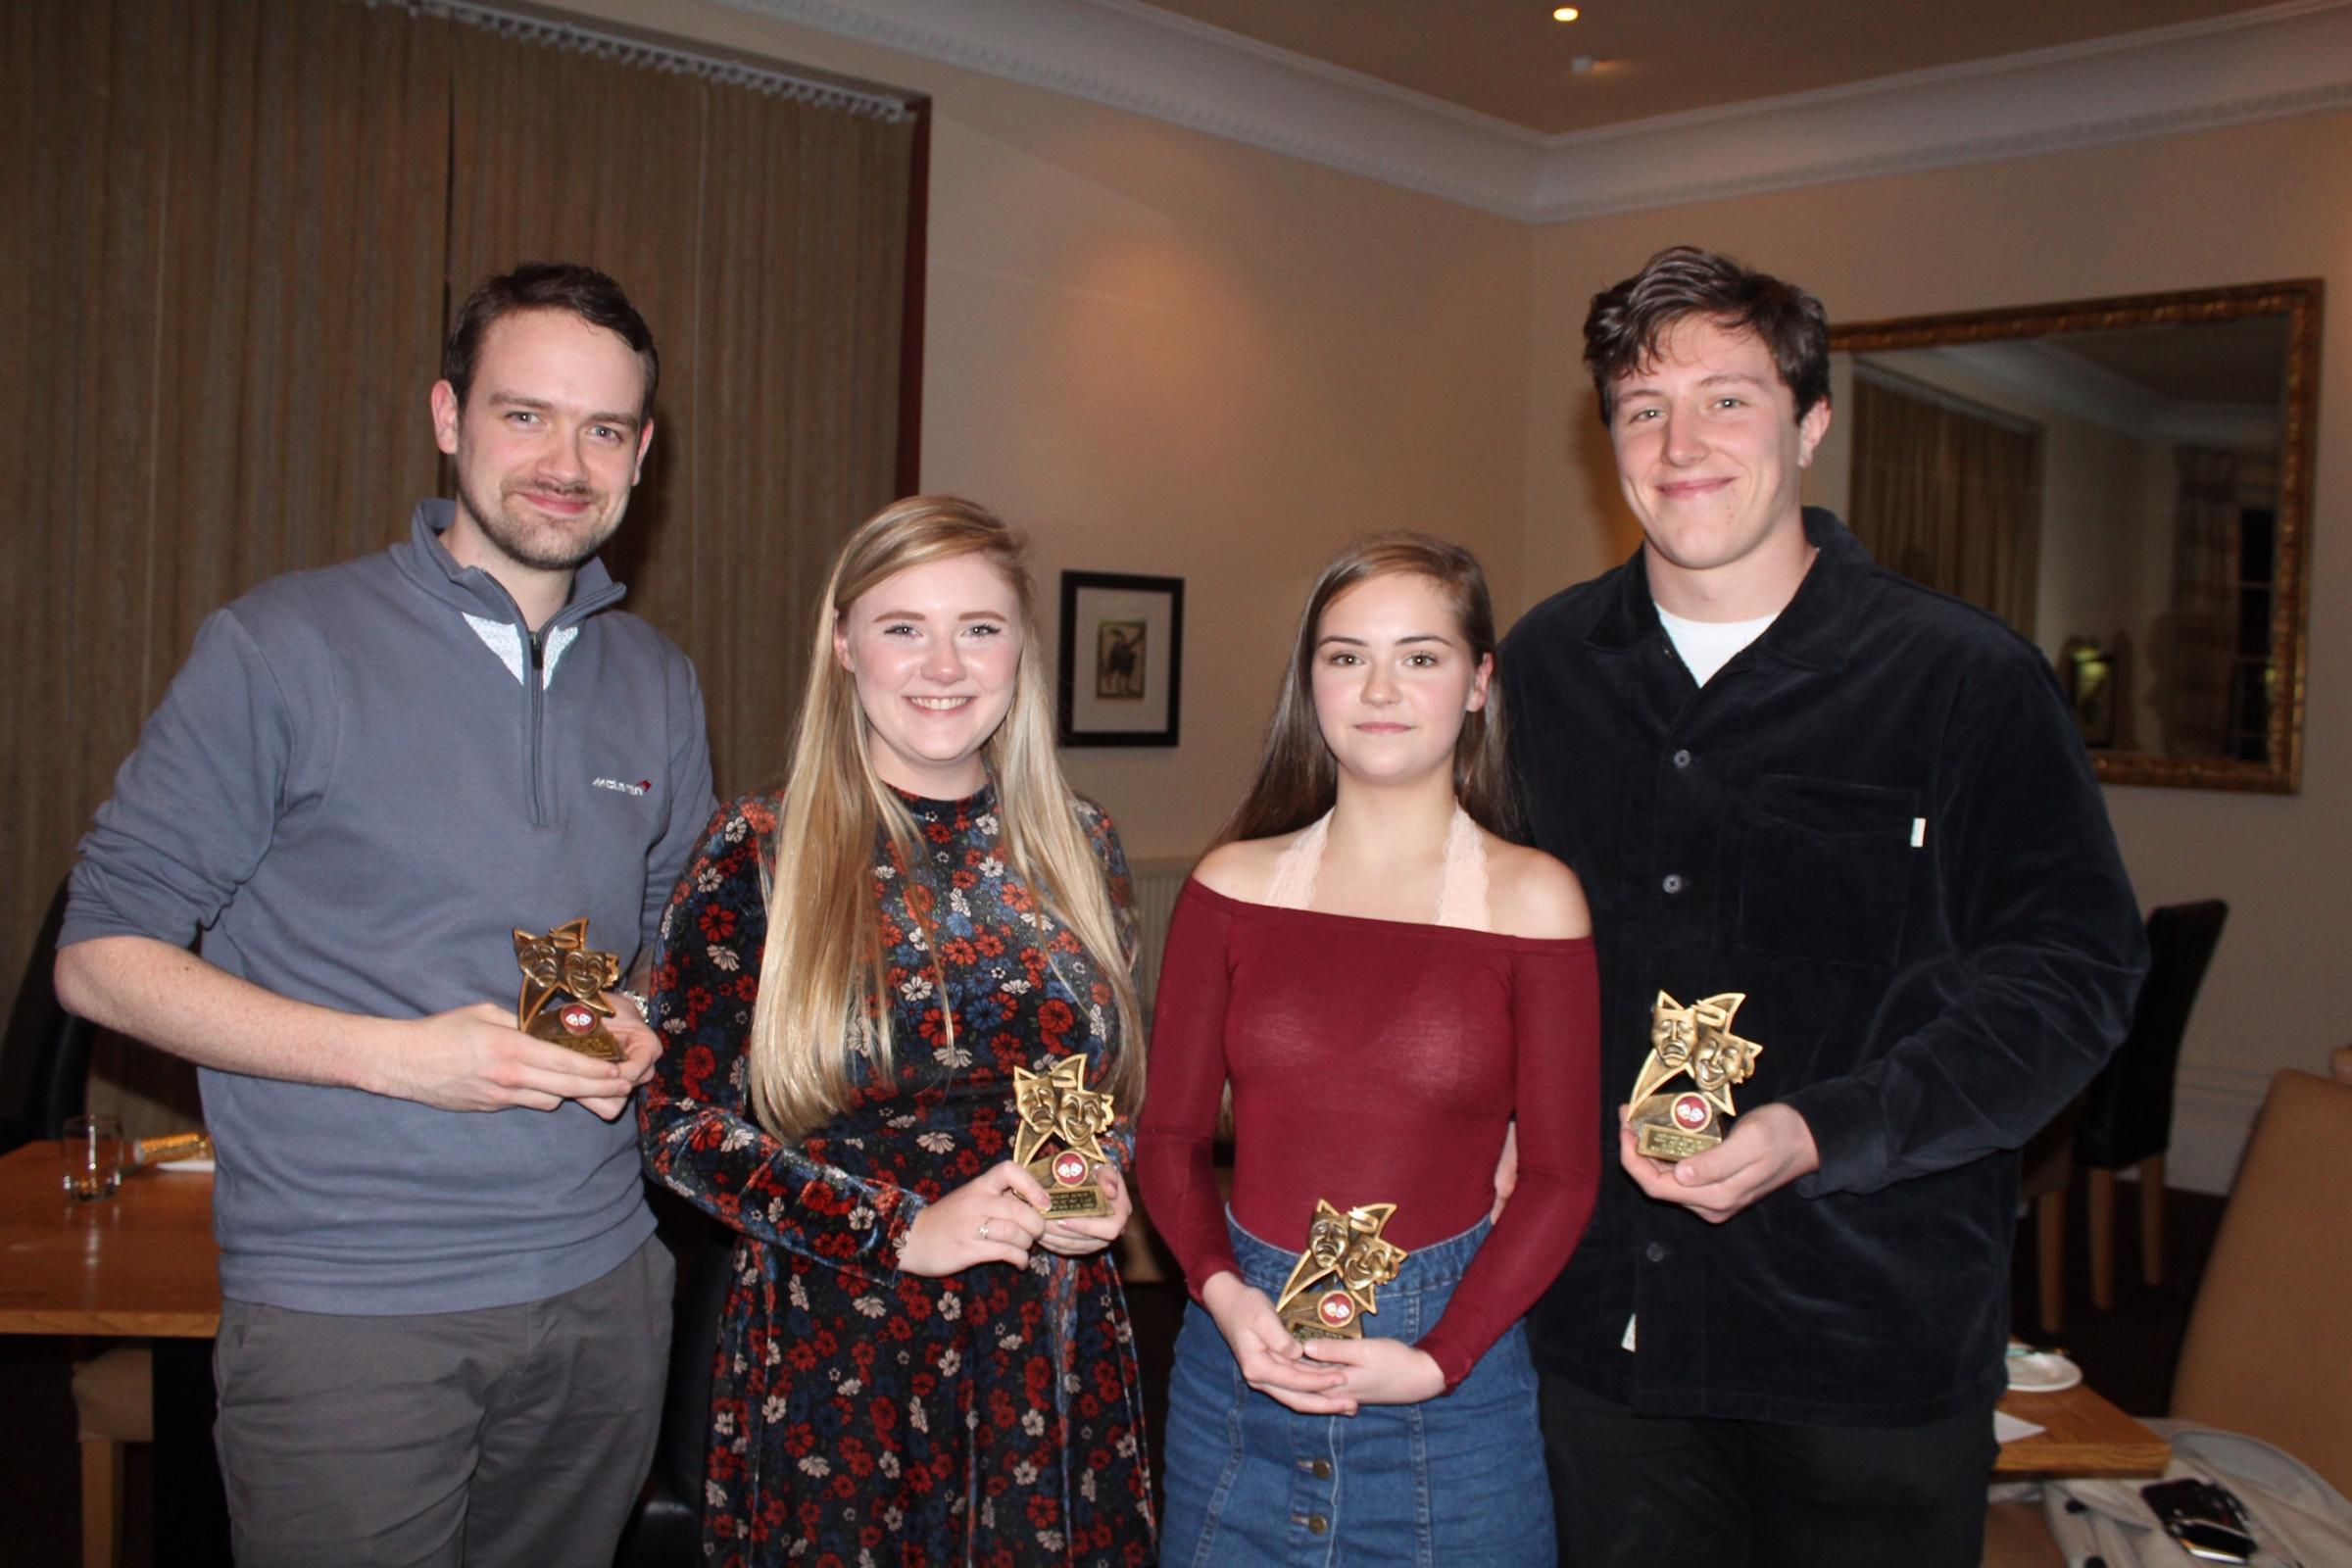 From left: Sam Morrish, Chloe Darrell, Becky Maggs-Pigott and Matthew Lawrence